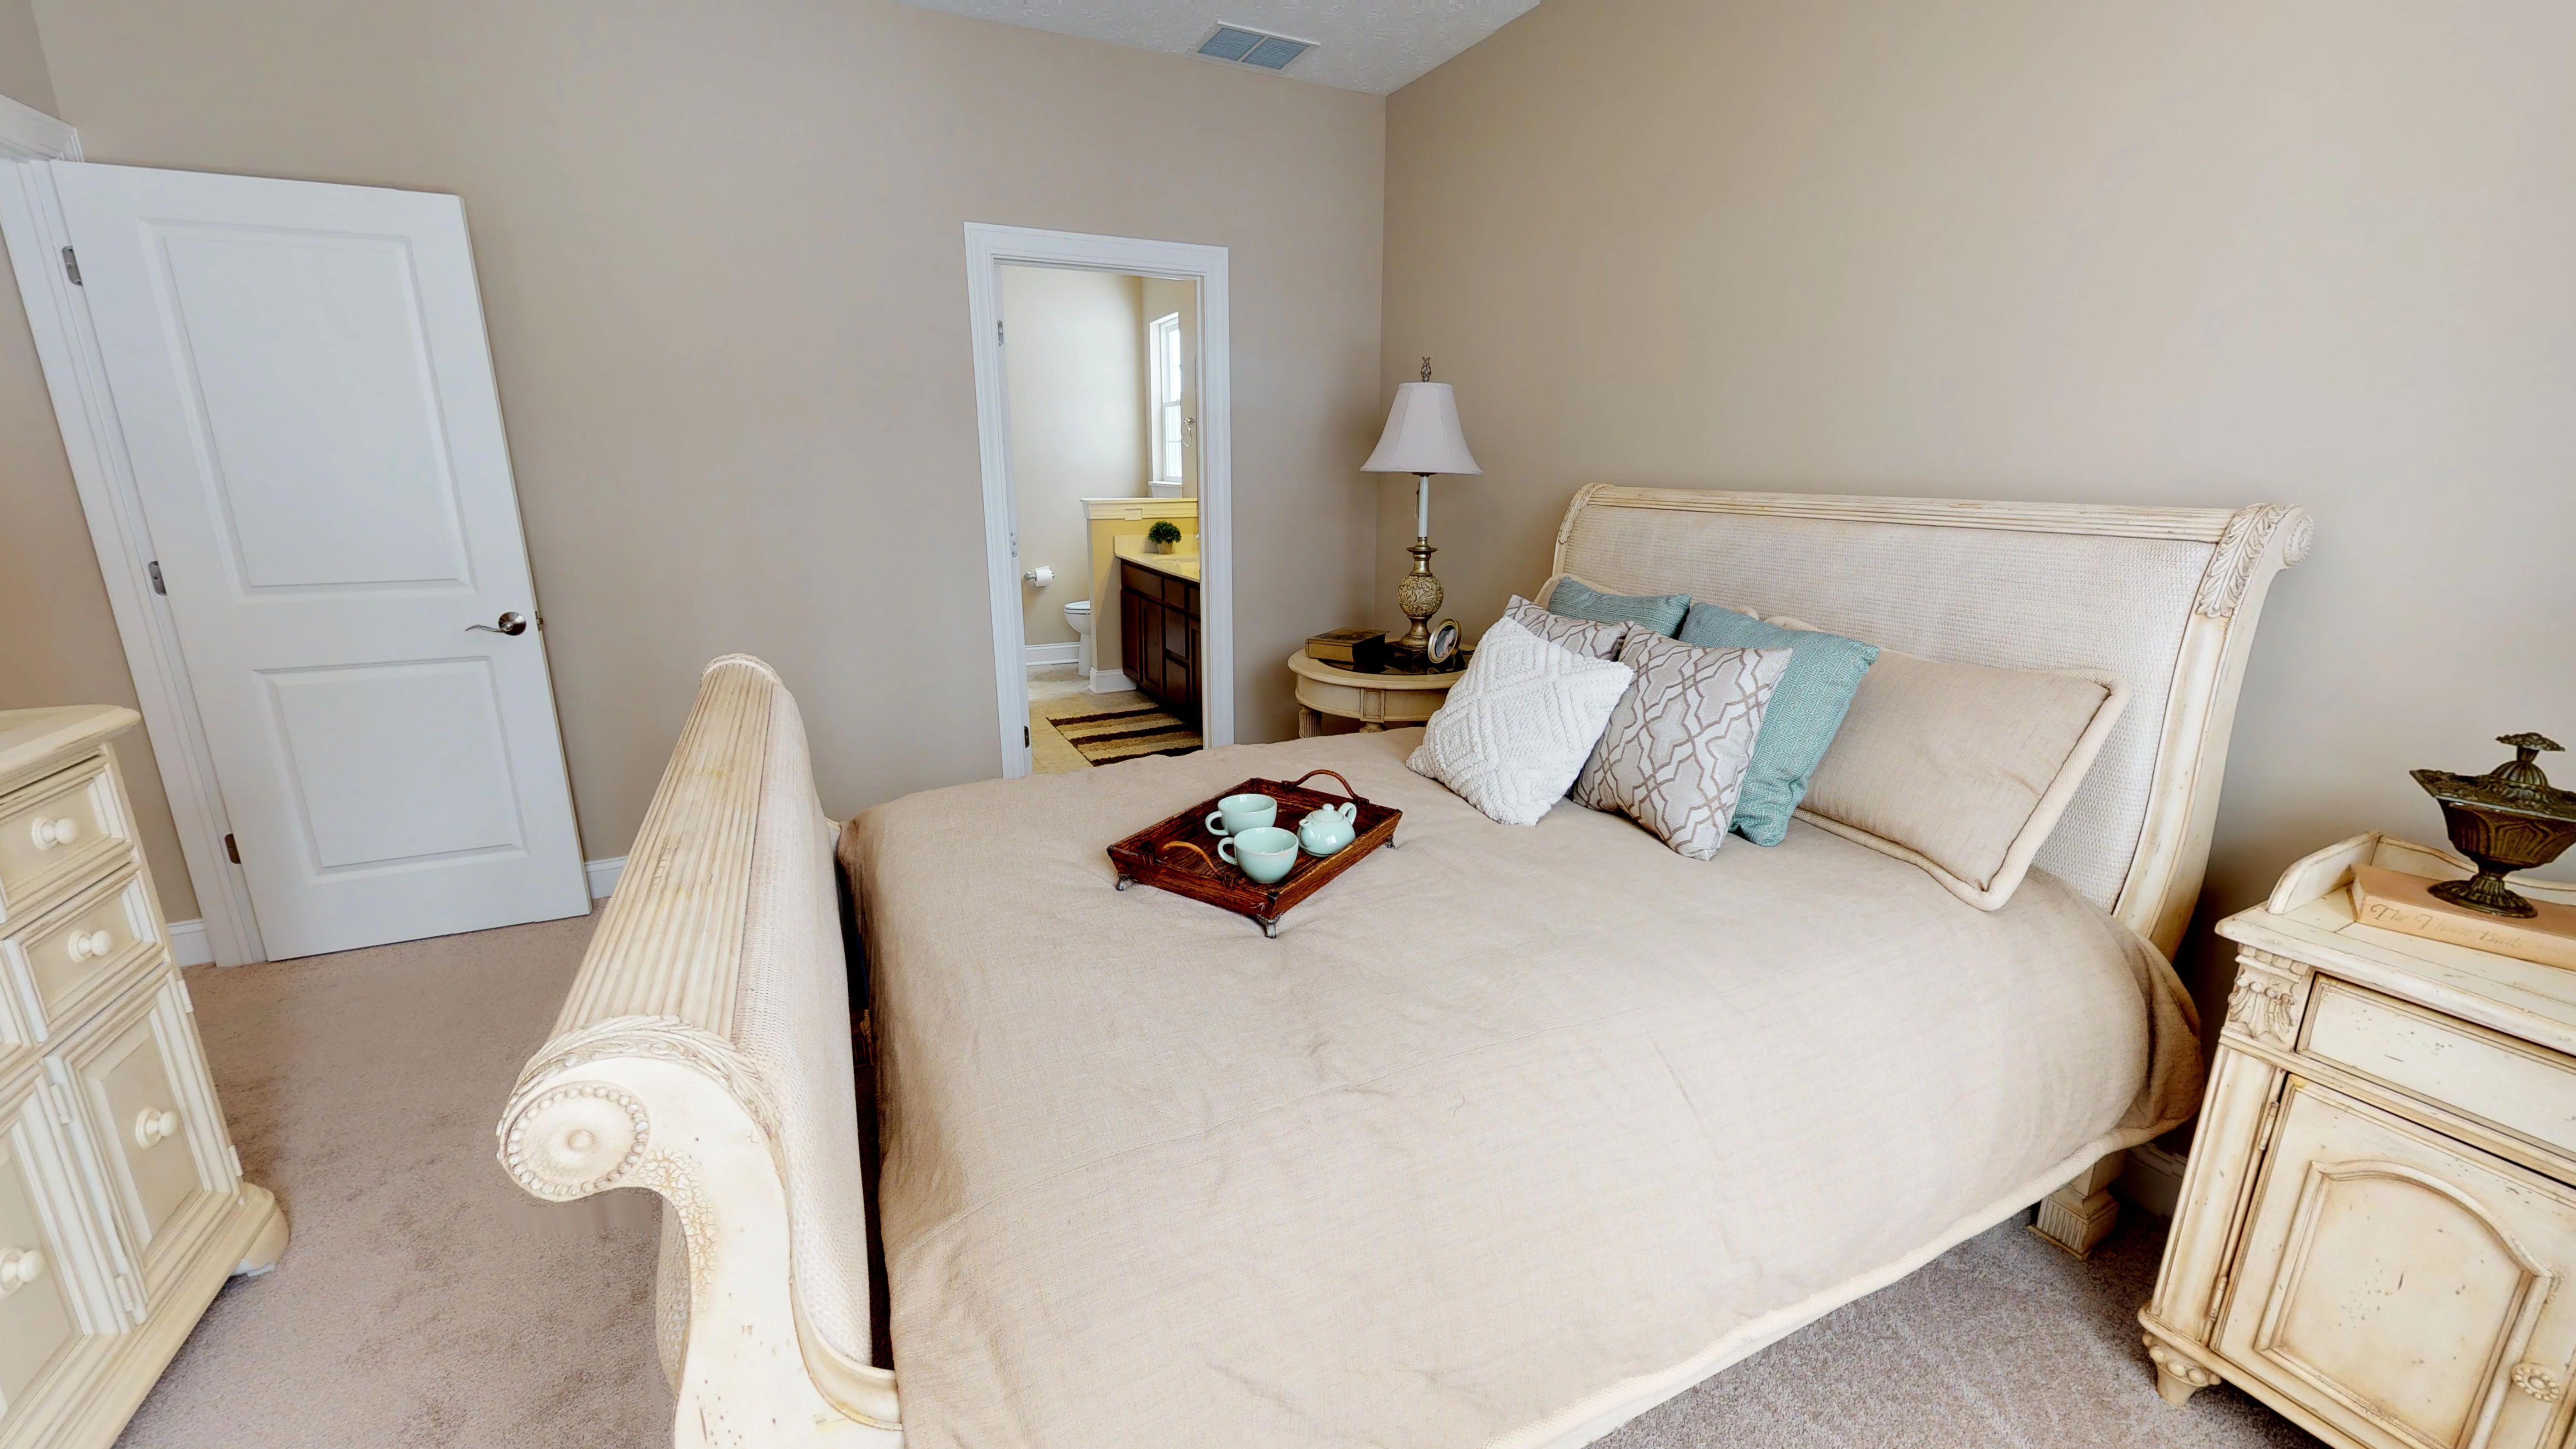 Bedroom featured in the Chateau Villa By Parkview Custom Homes  in Cleveland, OH